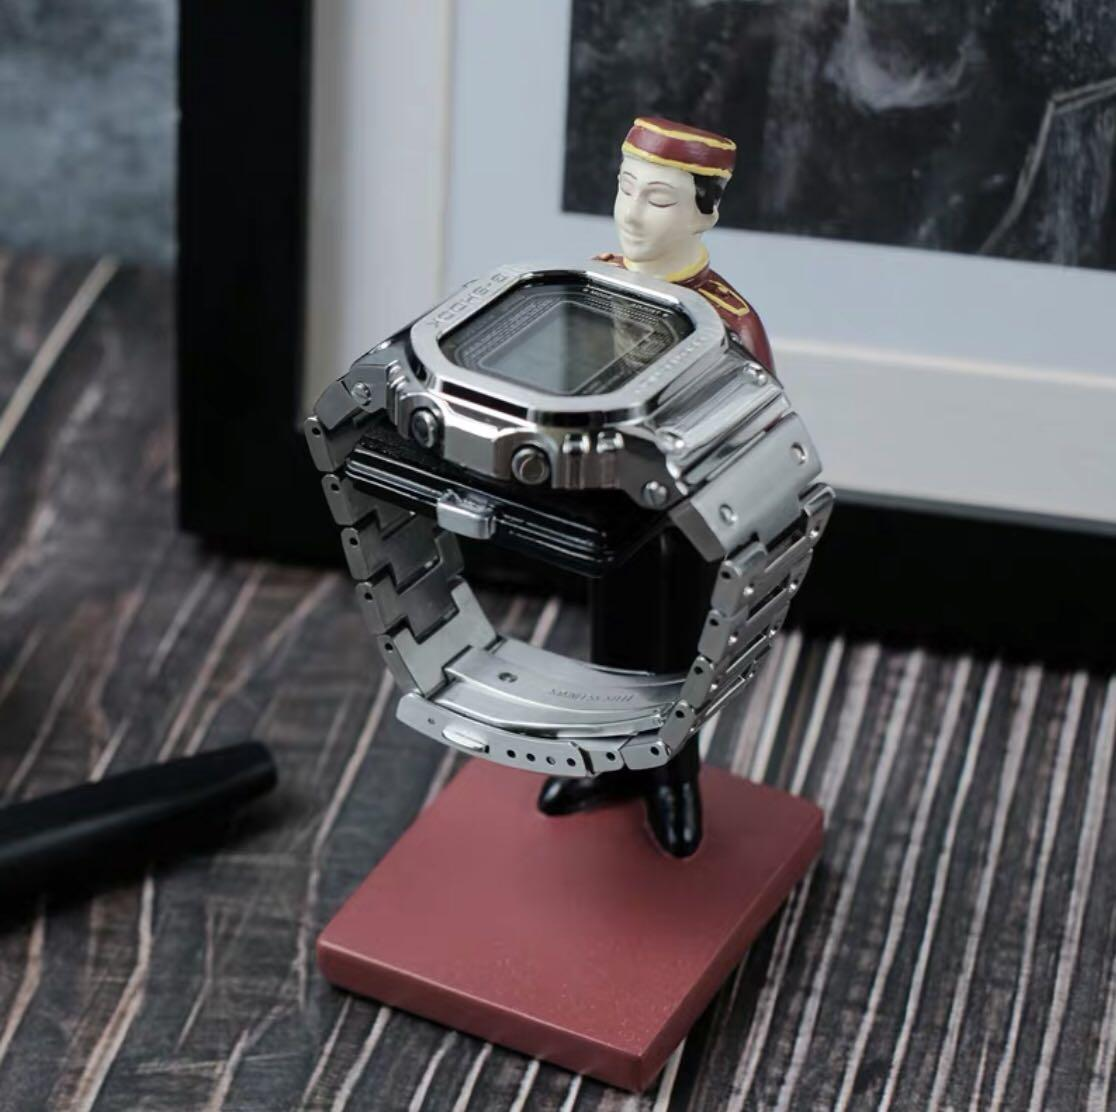 Watch Stand (Pre-Order)